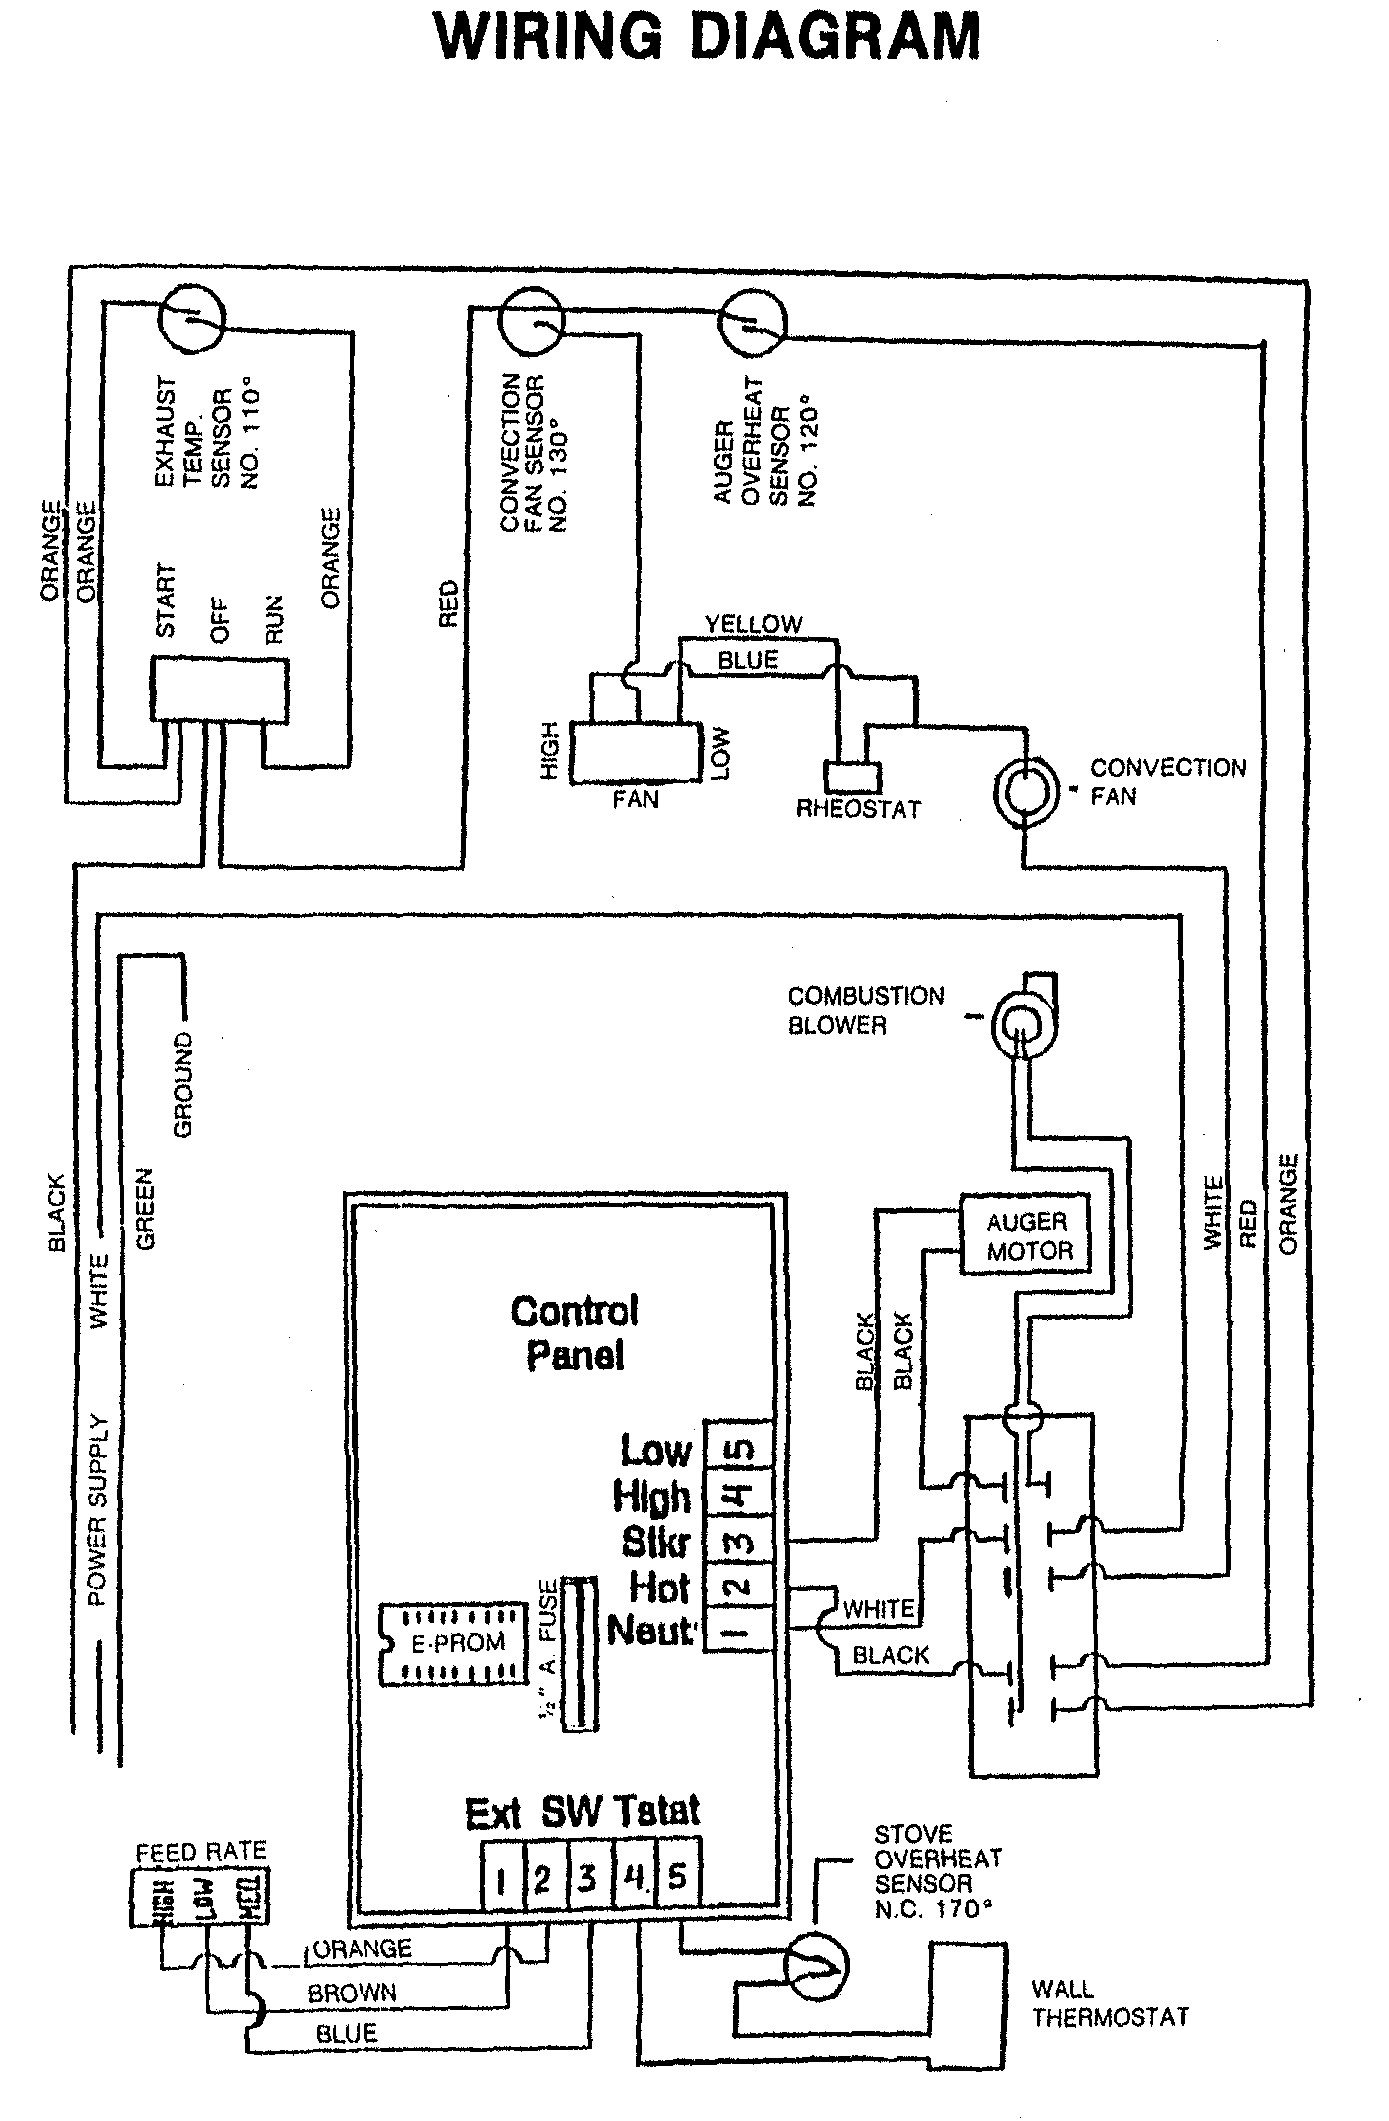 fire truck wiring diagram free picture schematic ga 3556  quadrafire wiring diagram wiring diagram  quadrafire wiring diagram wiring diagram